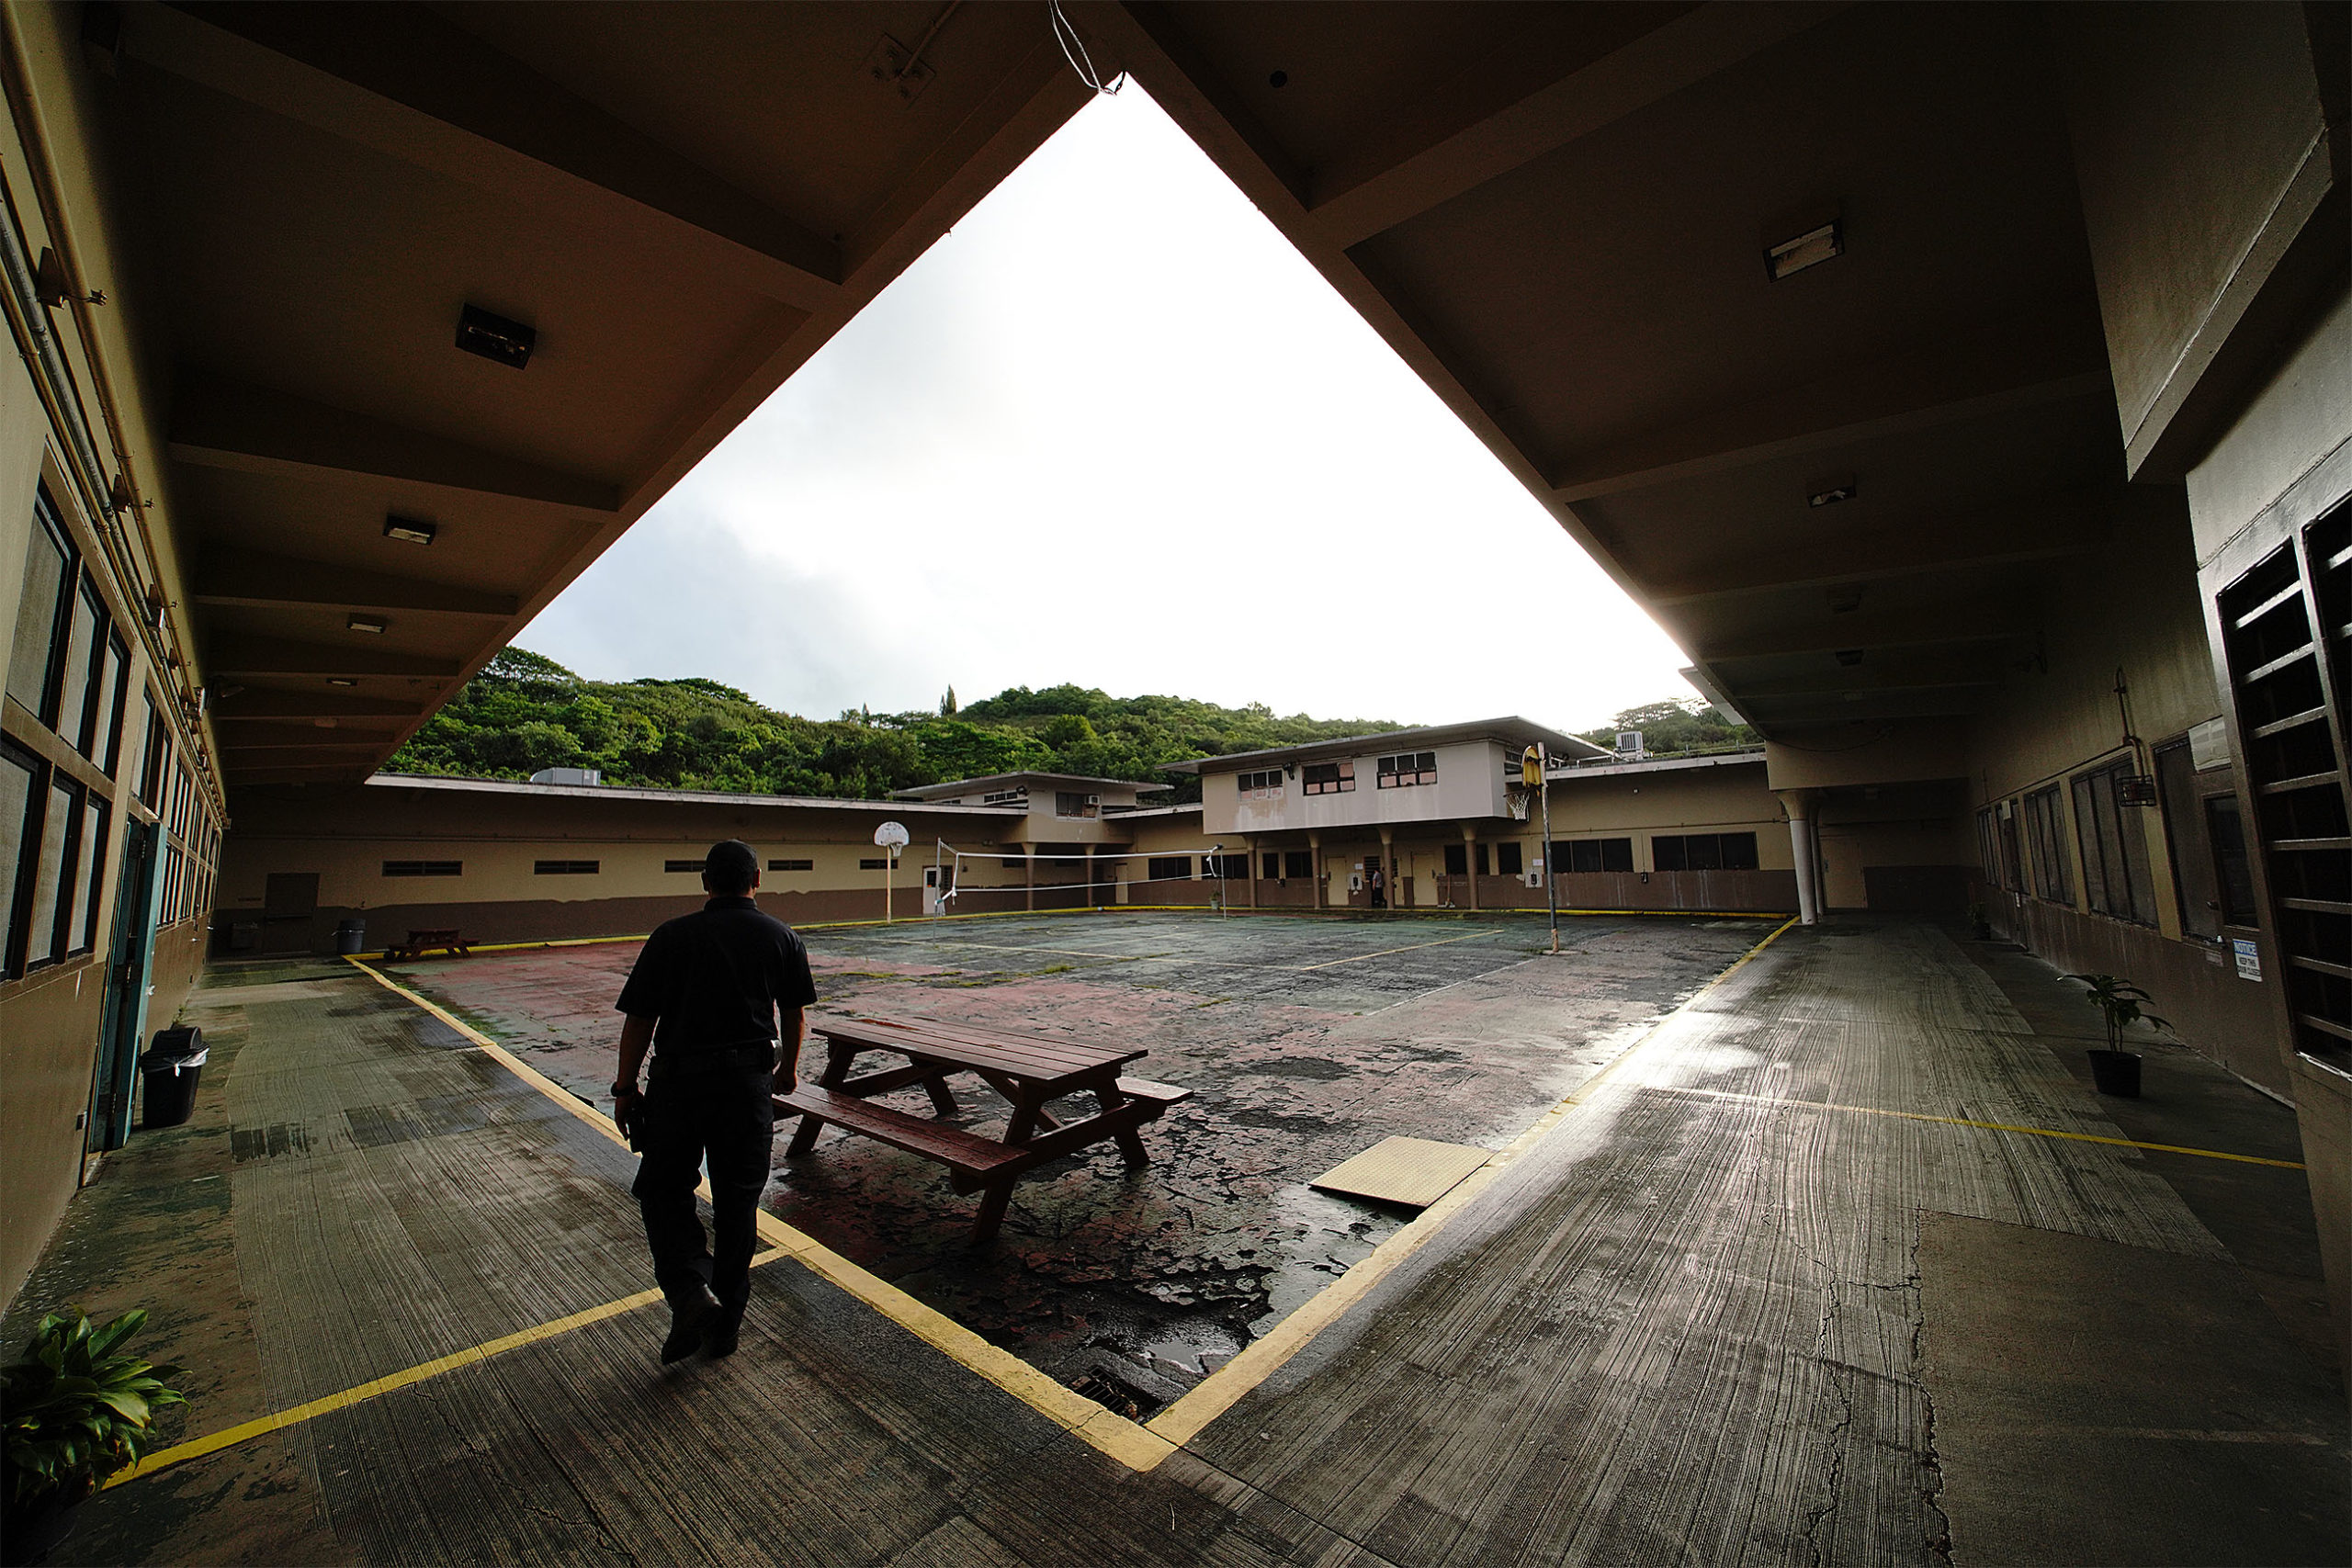 <p>The Women's Community Correctional Center in Kailua only houses female inmates who have been sentenced to one year or more in prison. The operating capacity is 341 and the population as of last week was 247.</p>